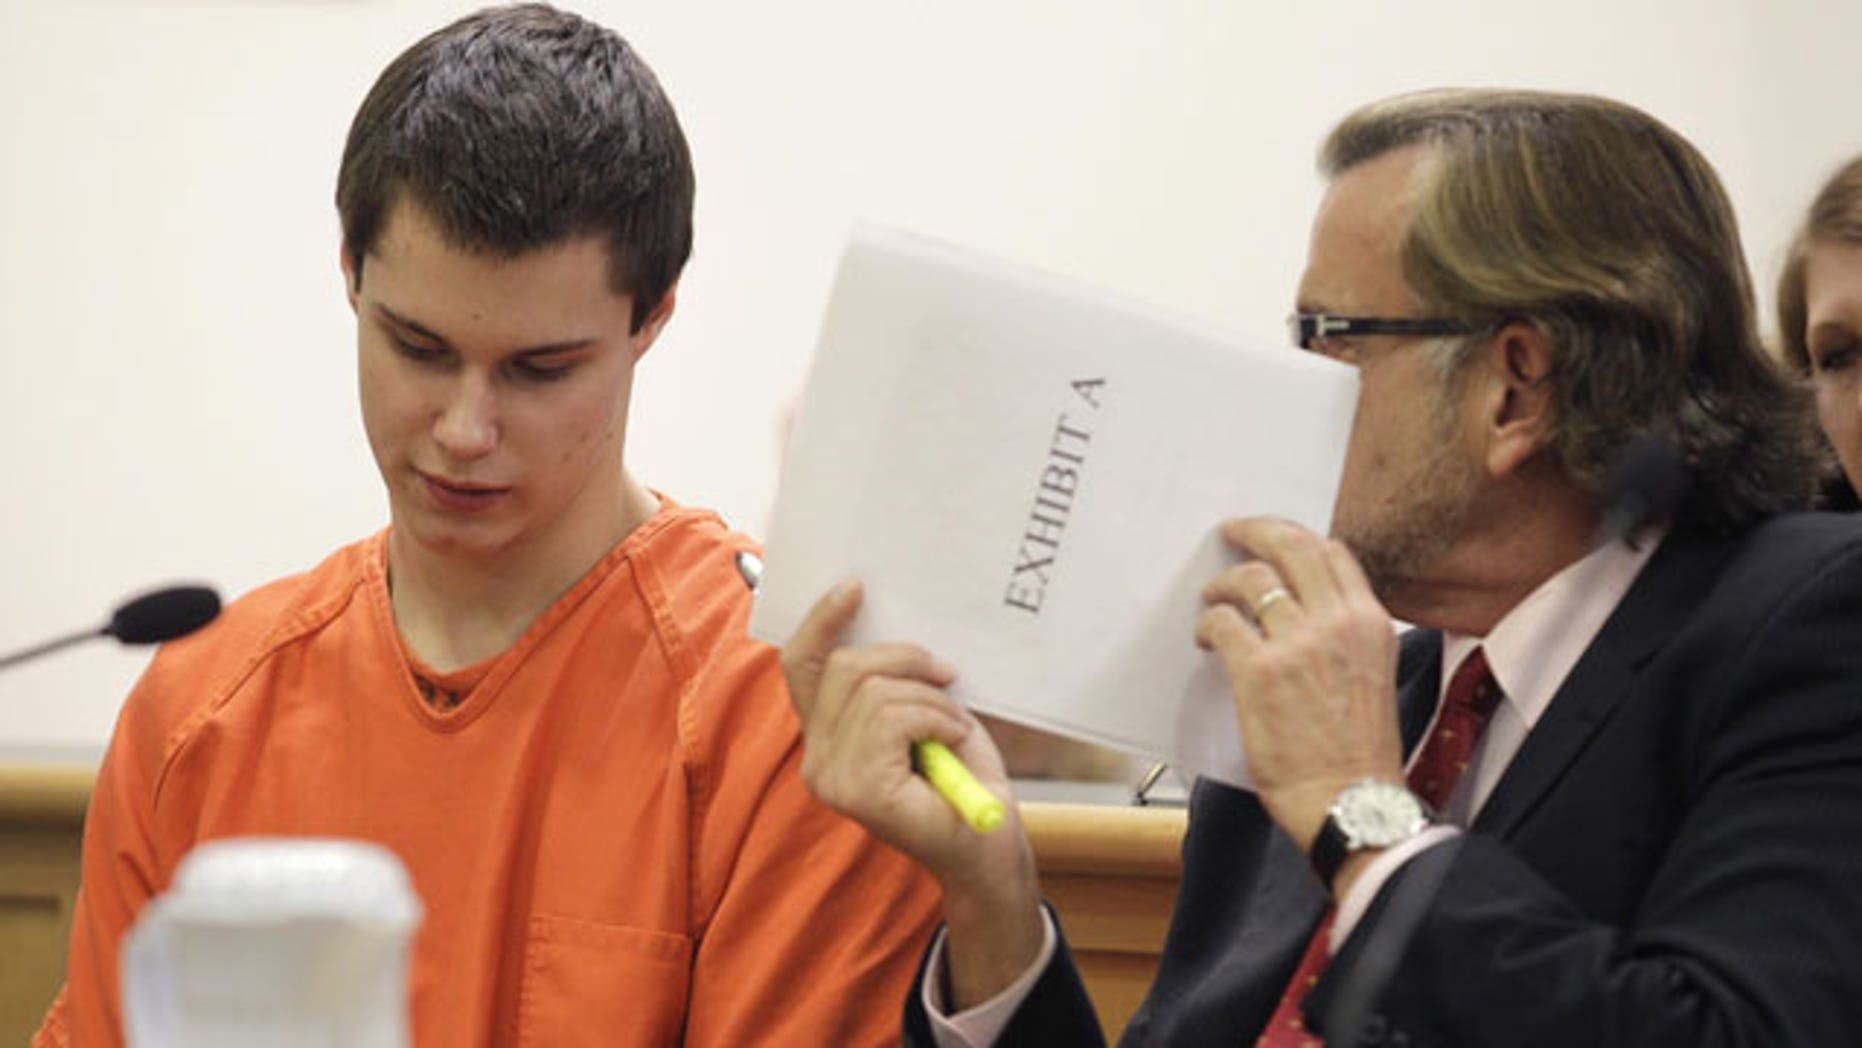 December 16, 2011: Attorney John Henry Browne, right, uses a court document to shield his conversation with Colton Harris-Moore, in Island County Superior Court in Coupeville, Wash. Harris-Moore was later sentenced to more than seven years in prison after pleading guilty to dozens of state charges stemming from a two-year crime spree.